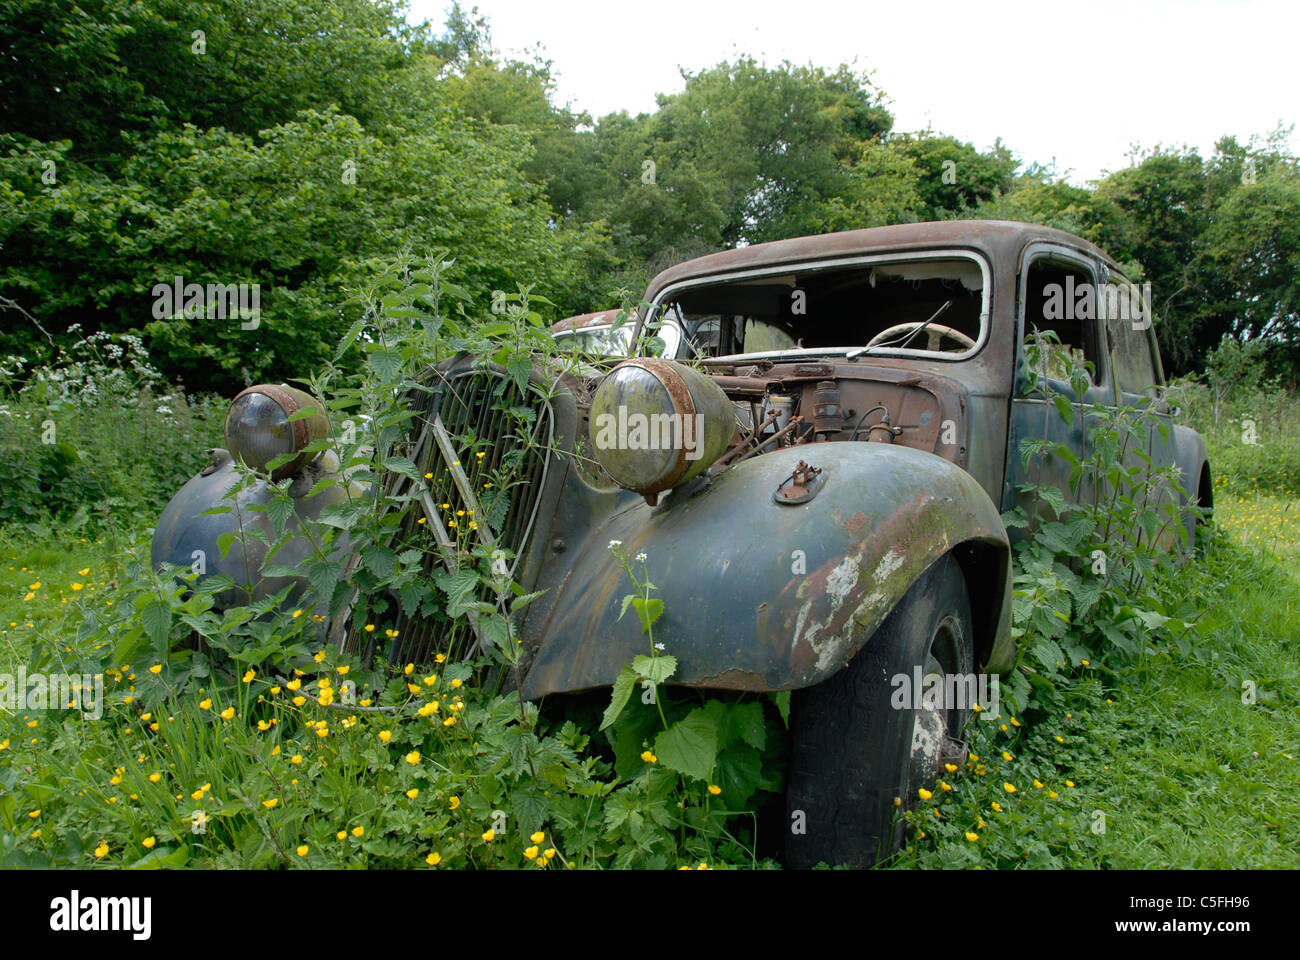 Old Abandoned Rusty Renault Car In Field Stock Photo